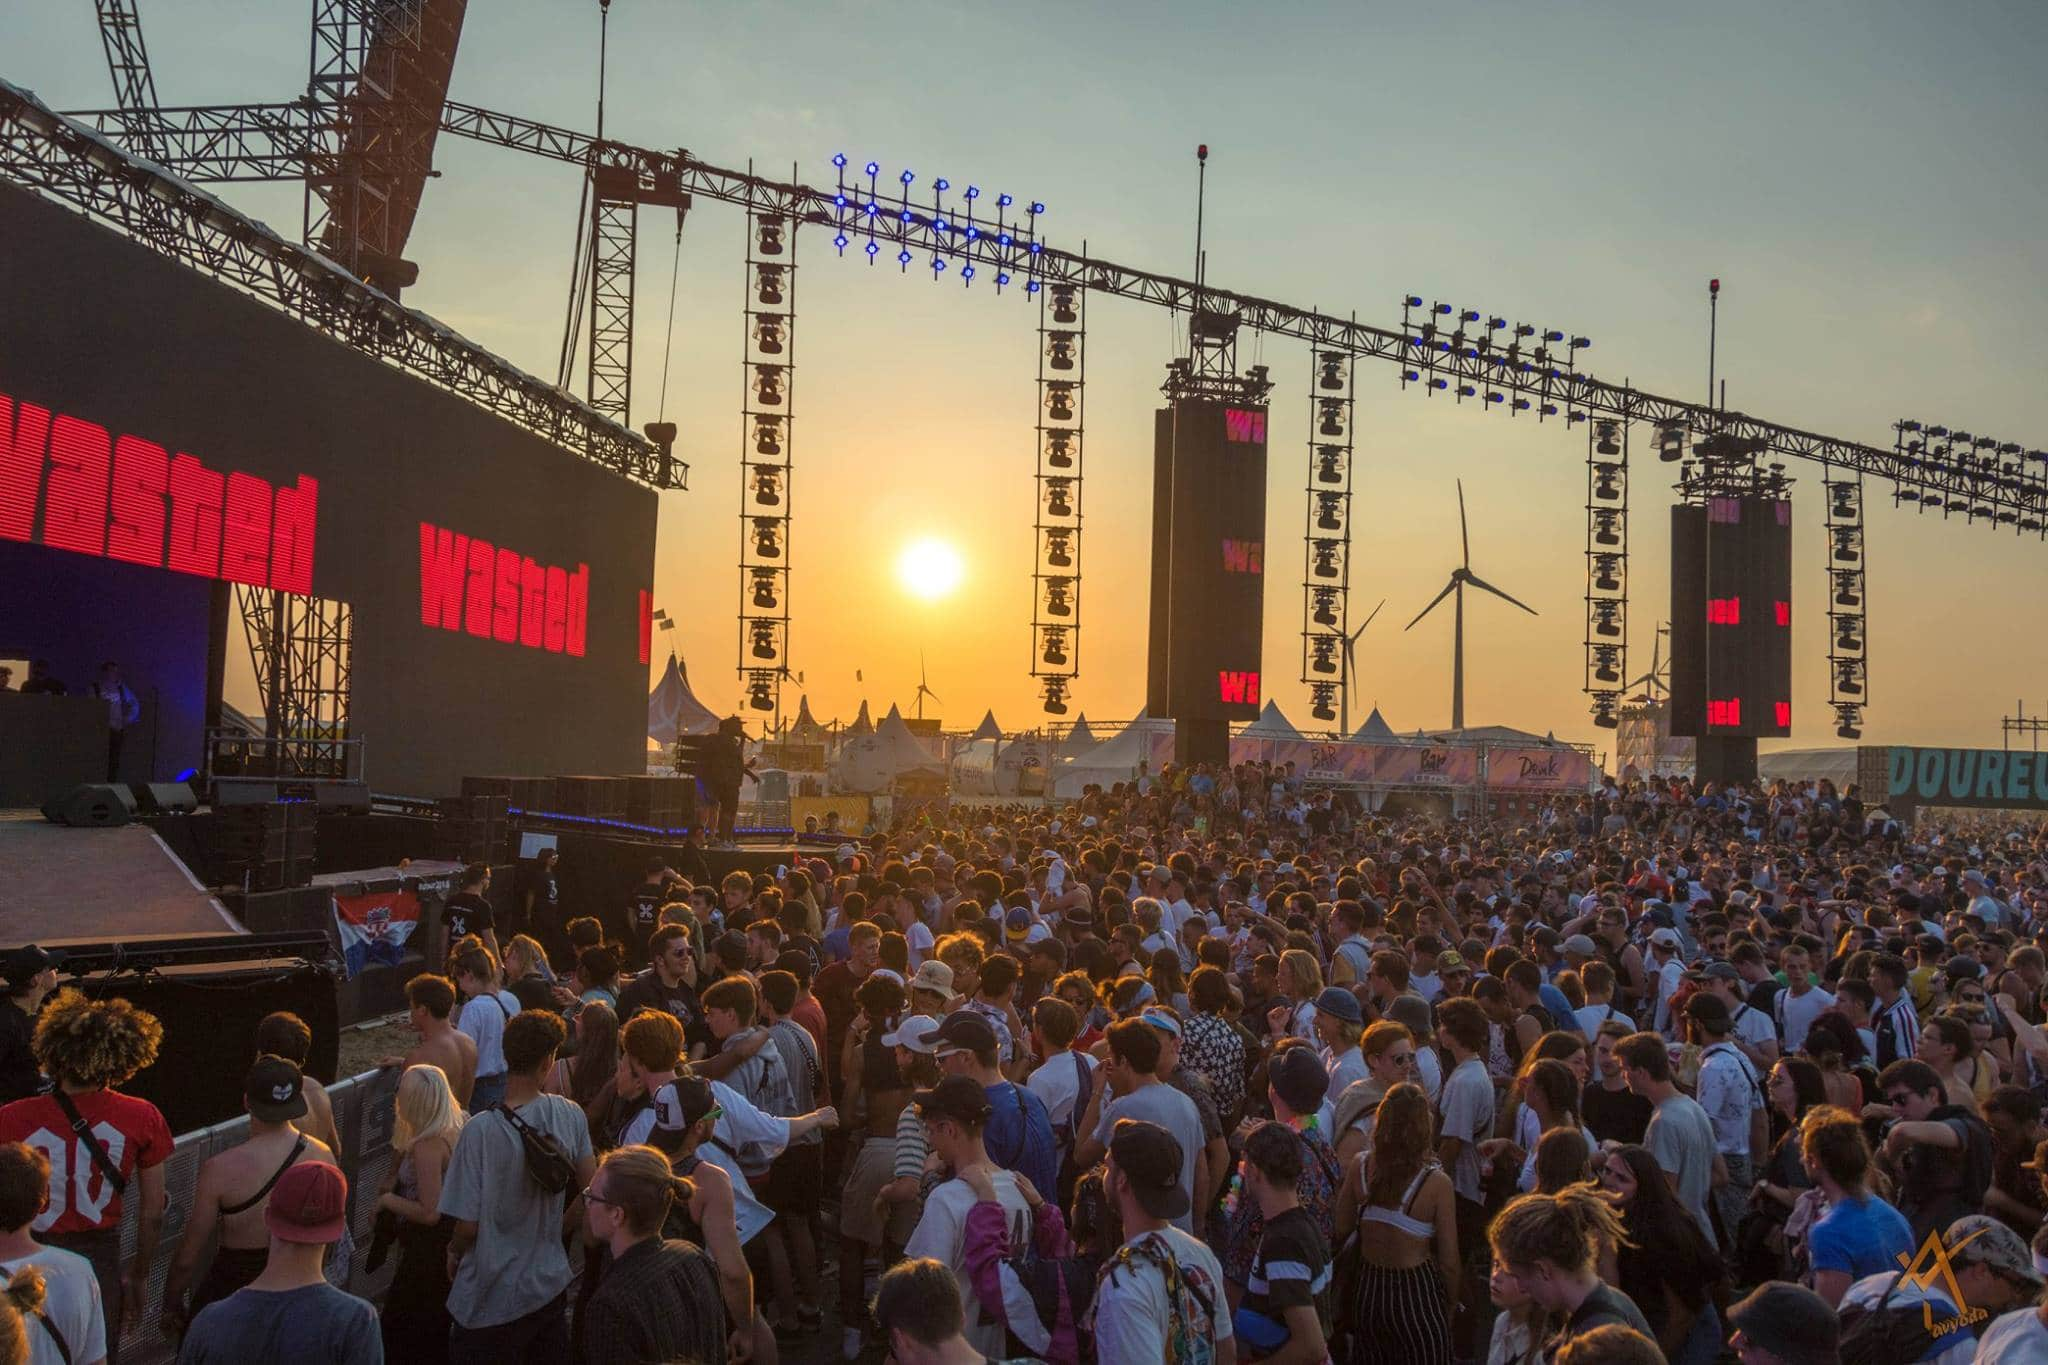 Dour Festival : 35 artistes techno, acid et drum and bass s'ajoutent sur la scène Elektropedia